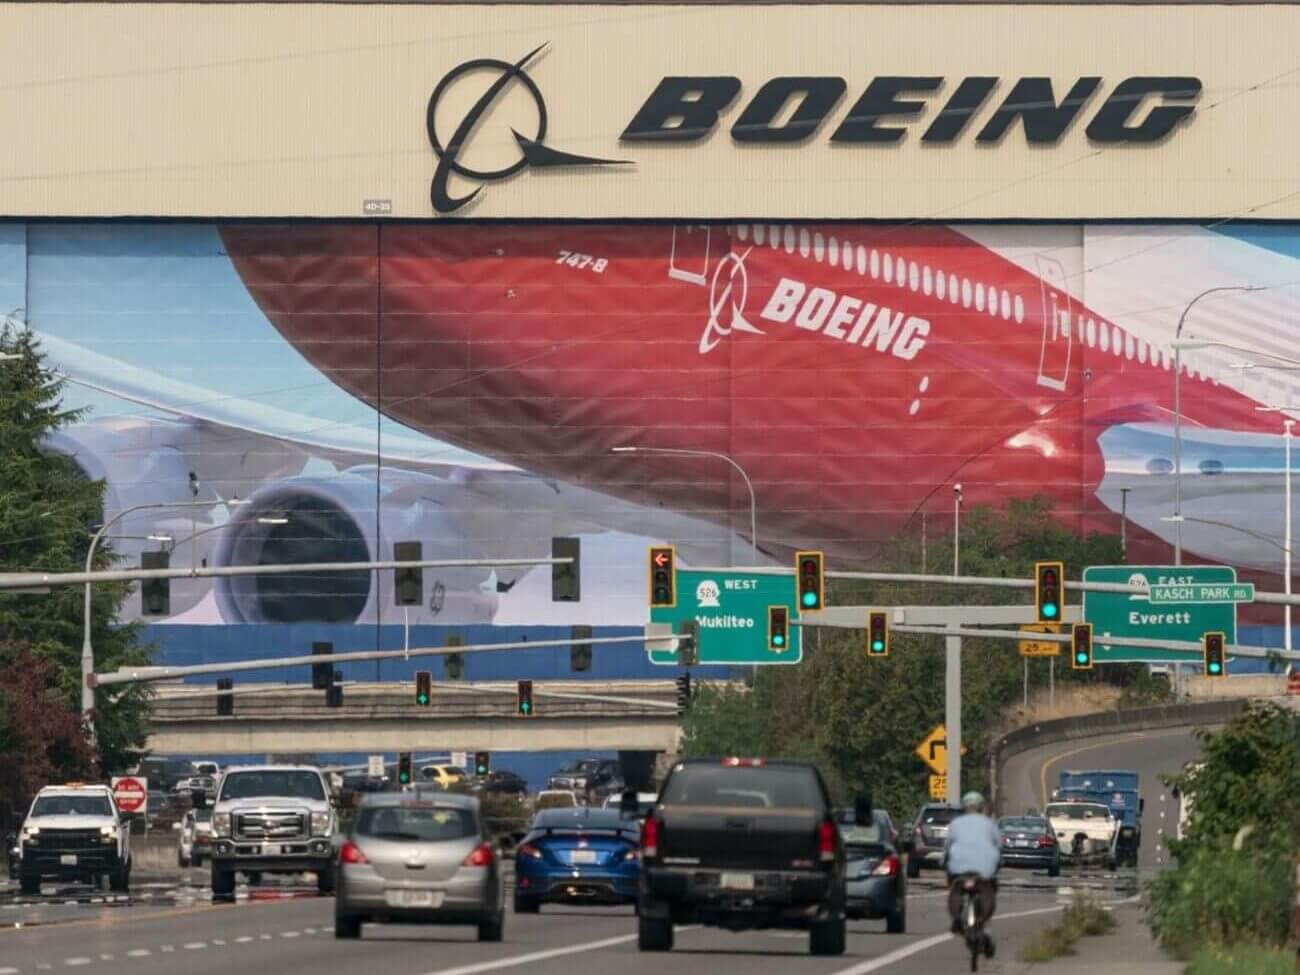 Boeing Is the Latest Firm to Bag away a Adverse Trade Ambiance